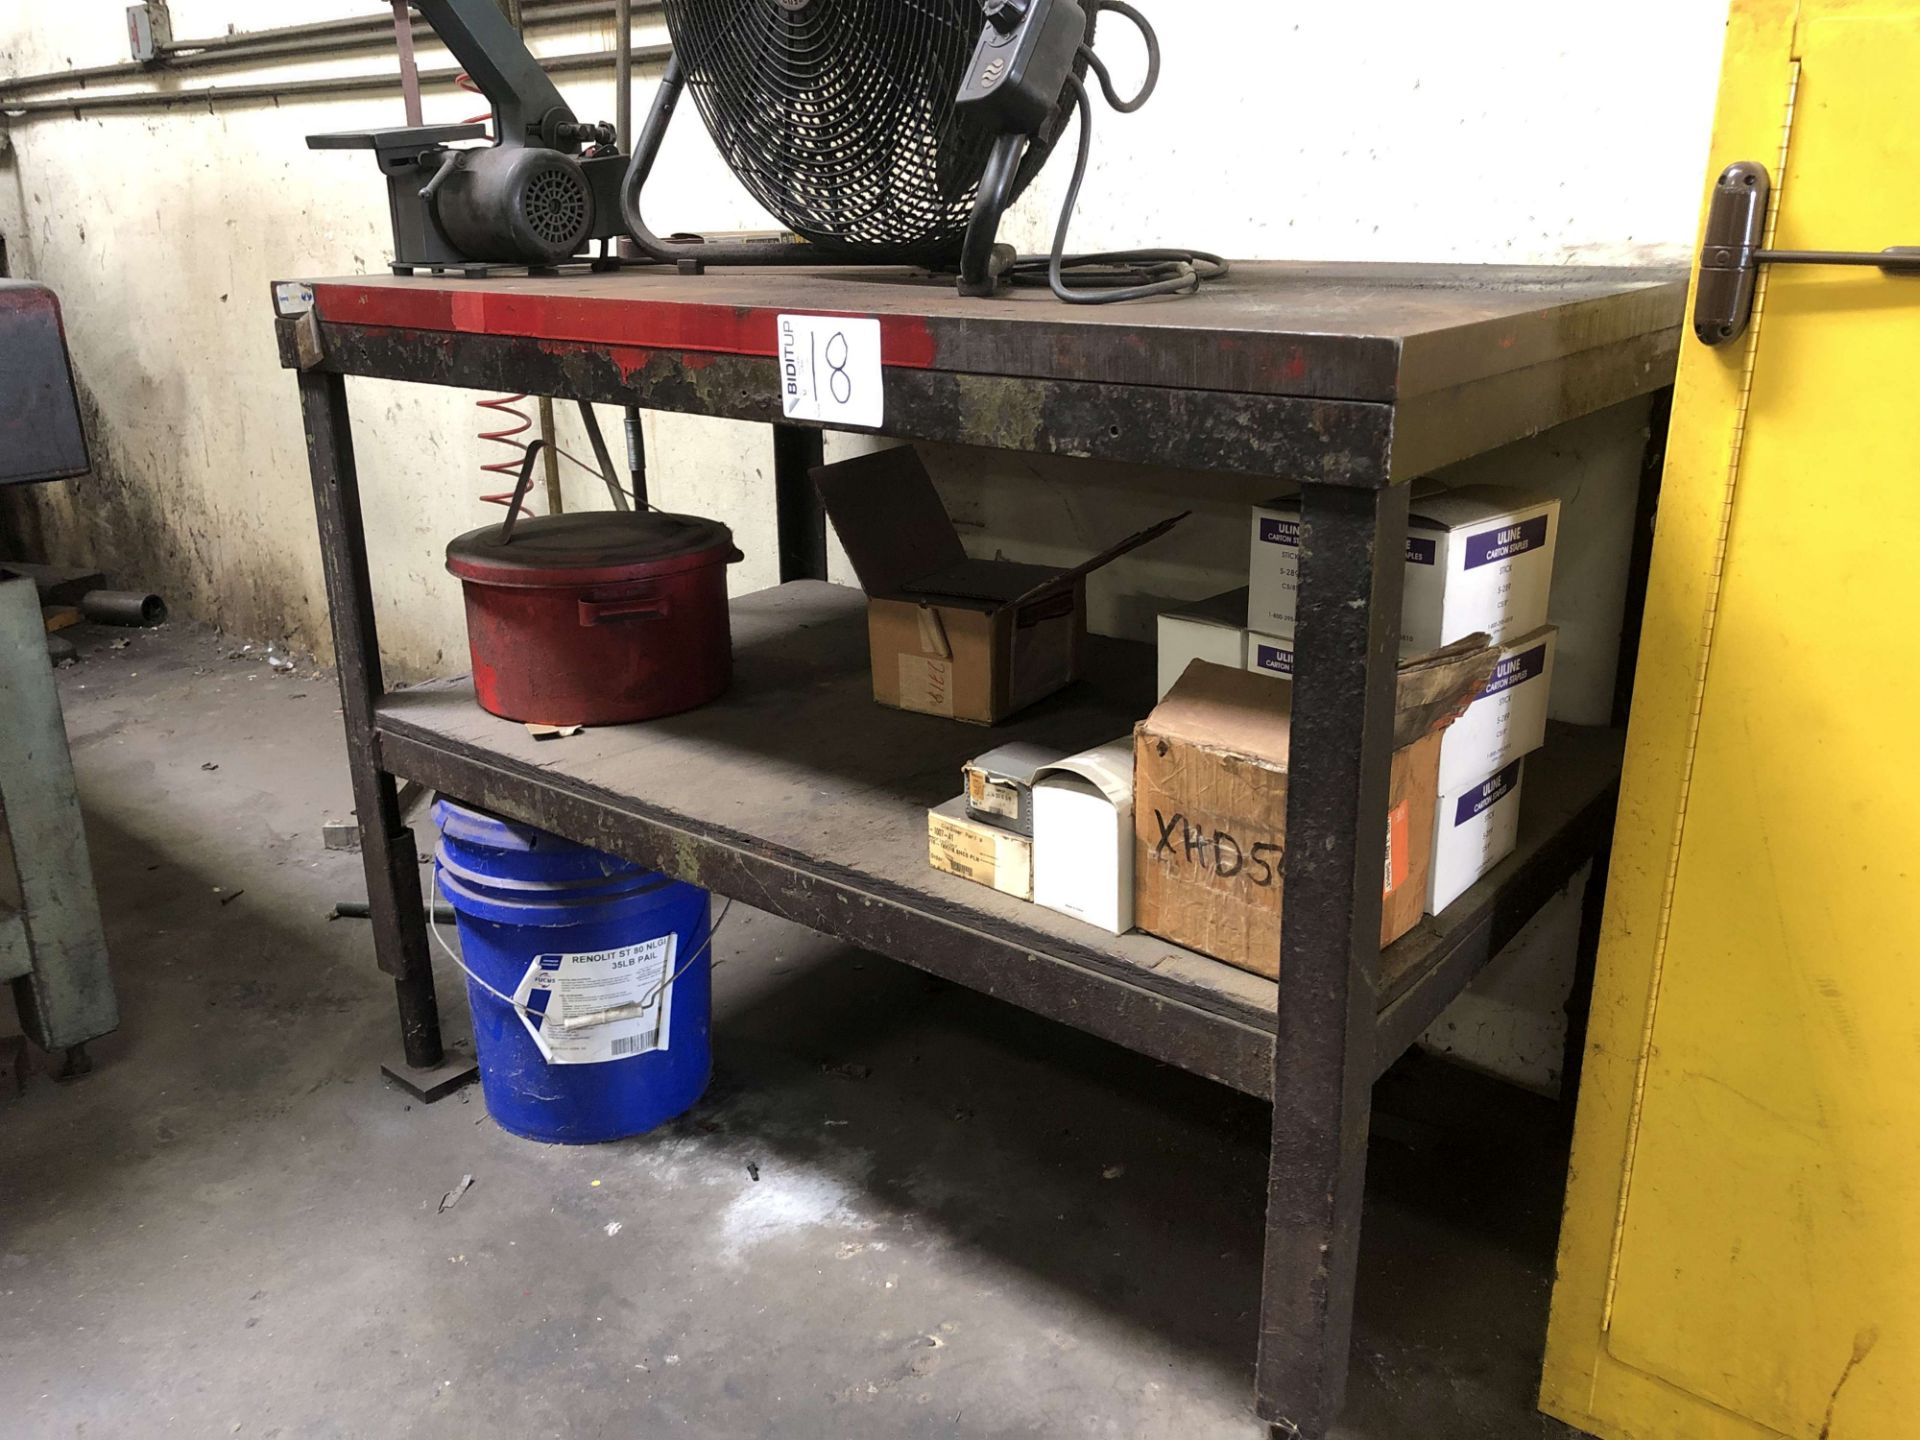 "Lot 18 - Metal Table (4' W x 30"" D x 44-1/4"" High); Comes w/ Contents (EXCLUDES LOT 17)"